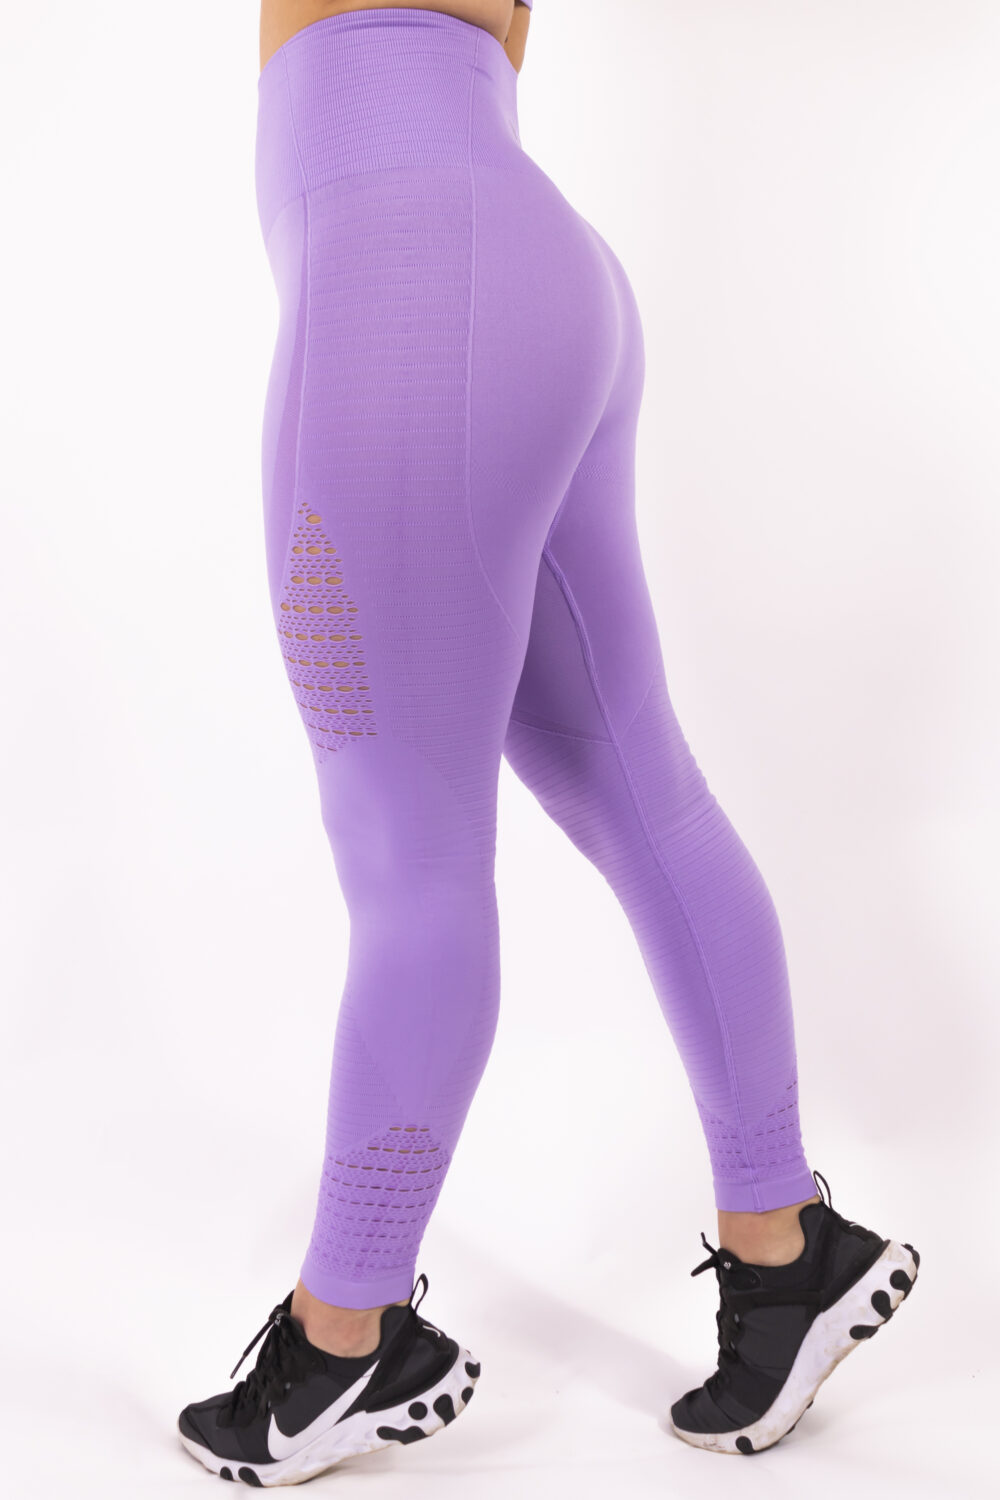 lilac sportlegging woman nutrition